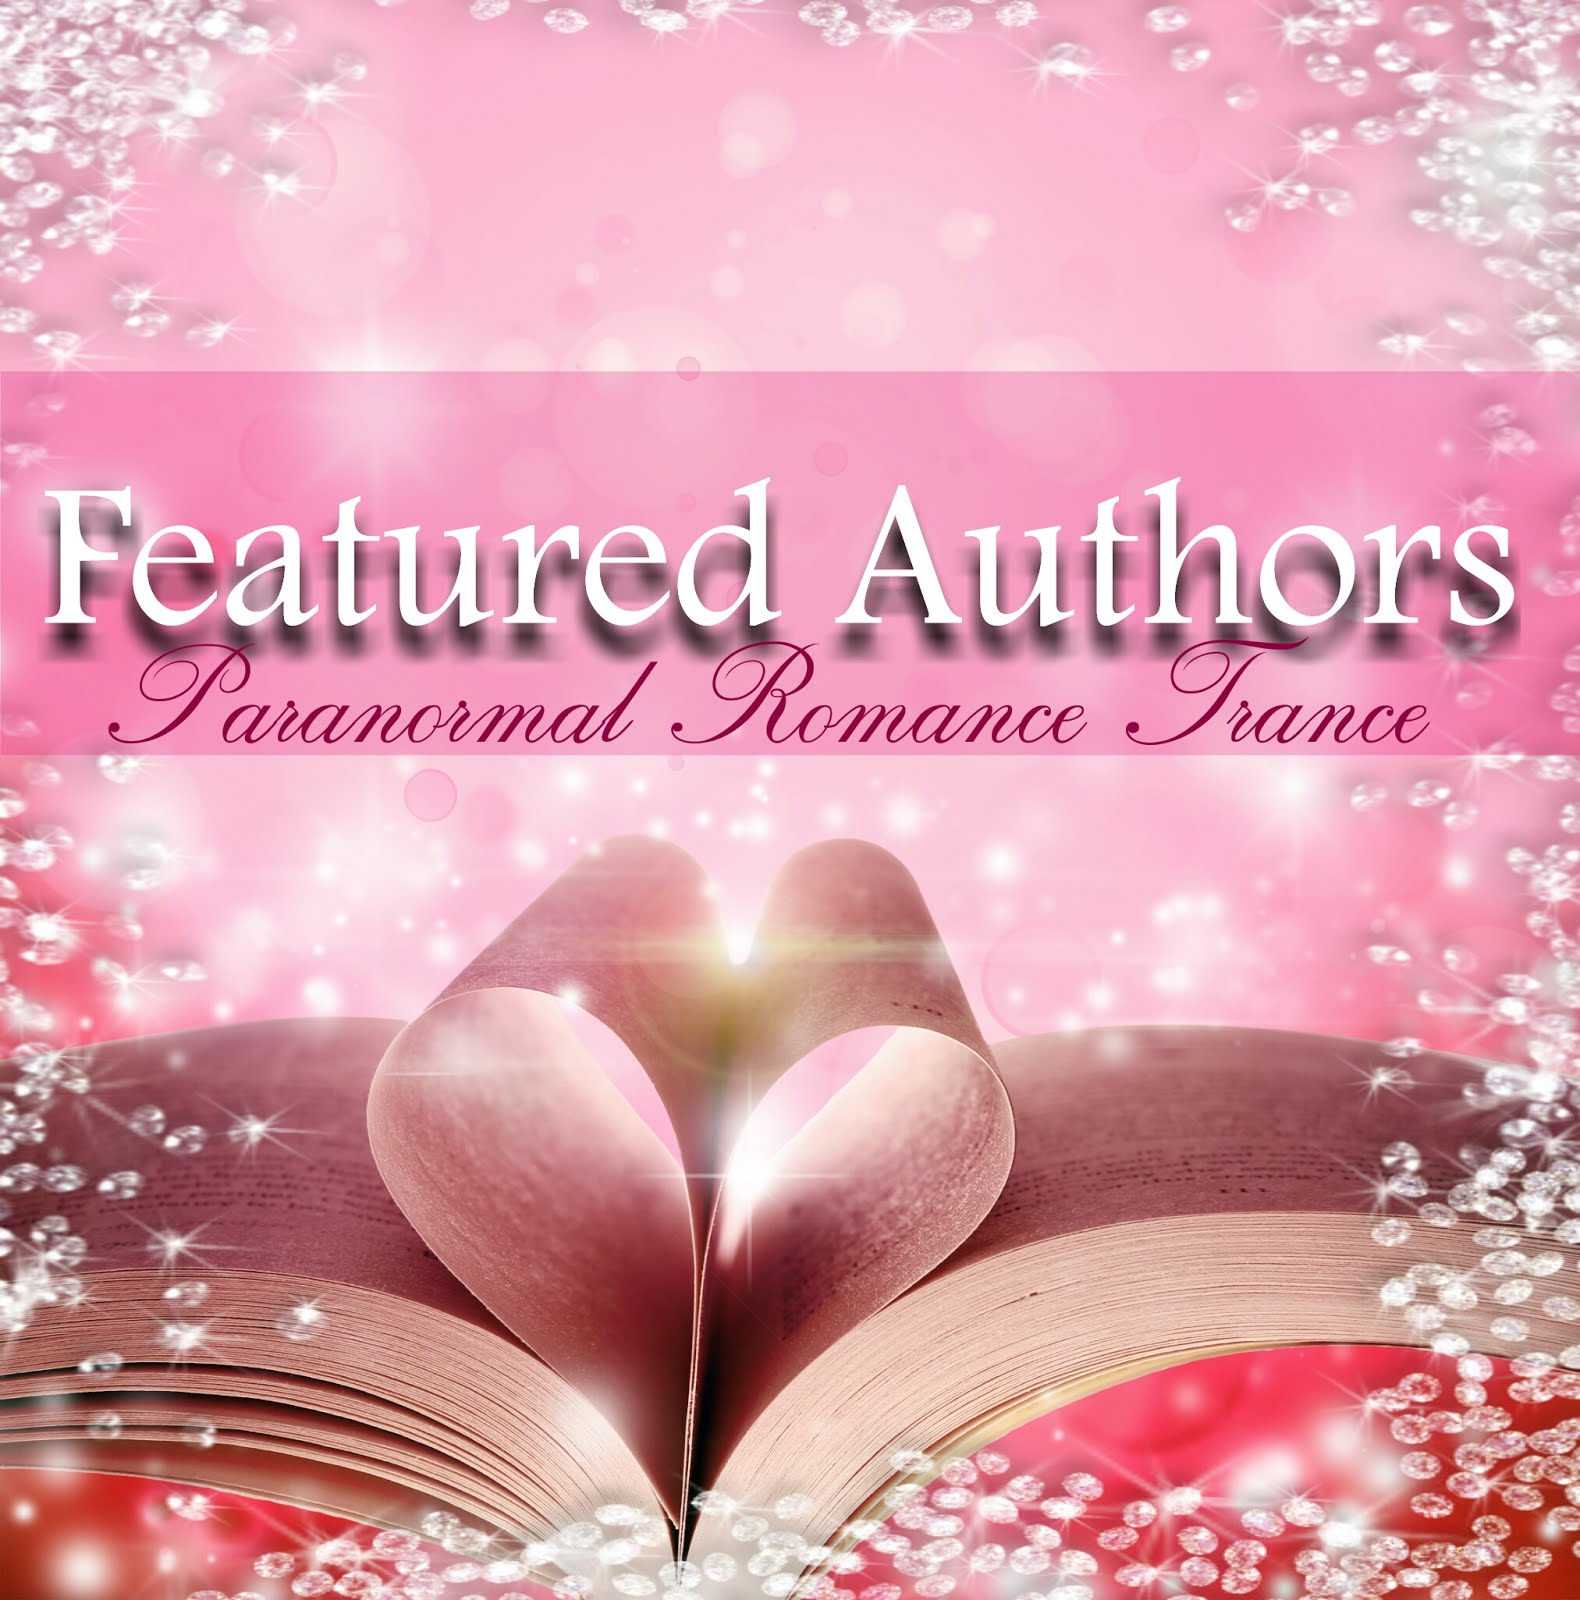 Featured Author's